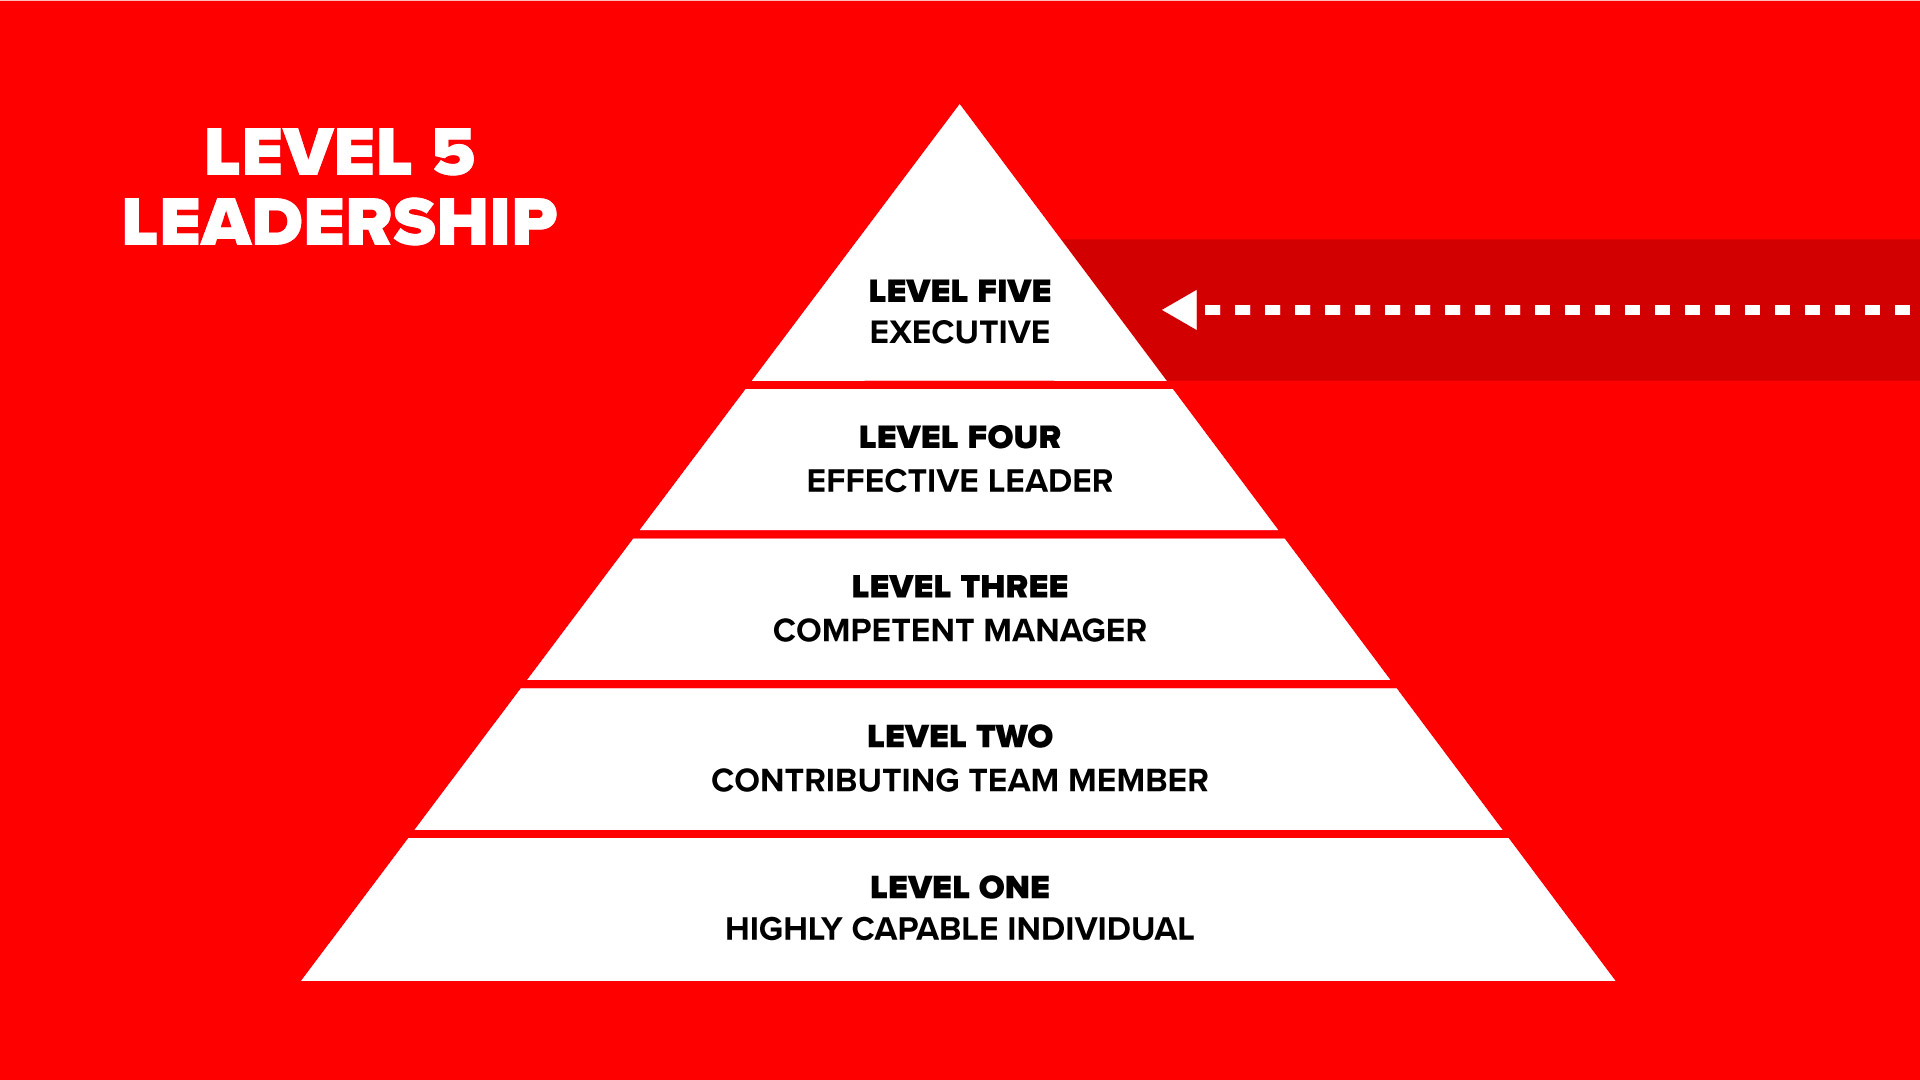 Level 5 Leadership From Good To Great Pyramid Infographic